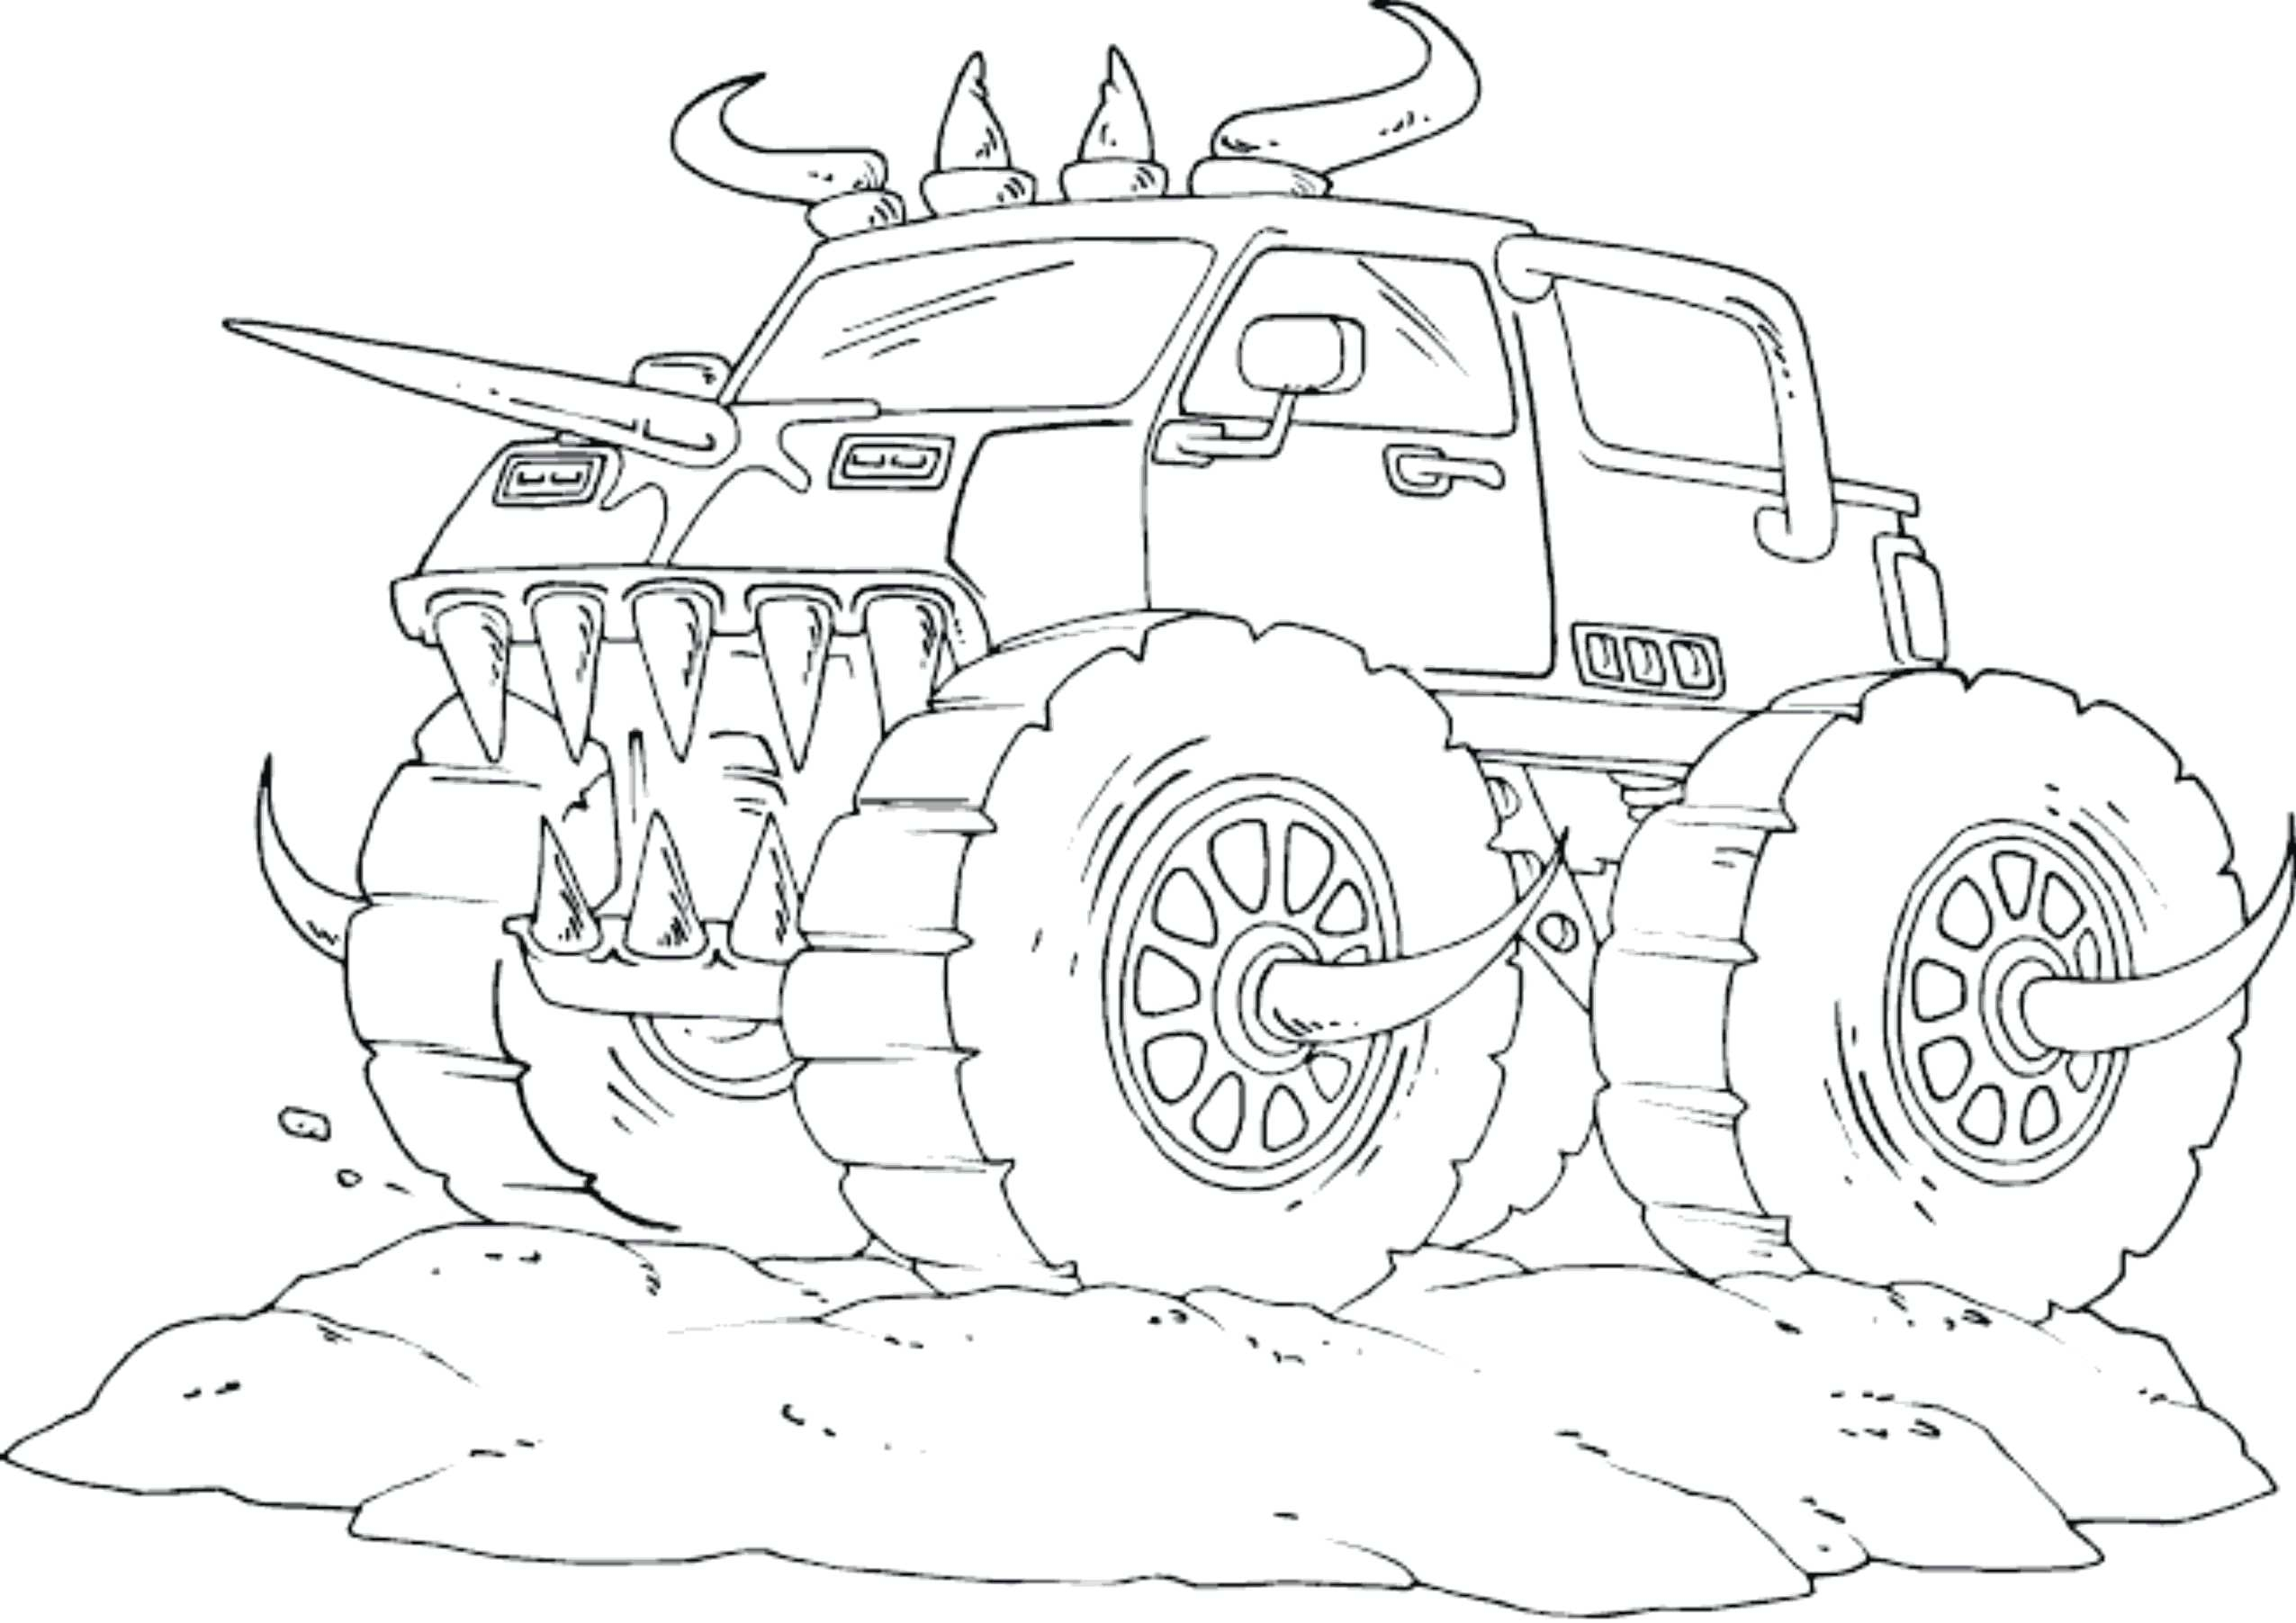 2551x1803 Willpower Free Grave Digger Coloring Pages Printable Zachr Page